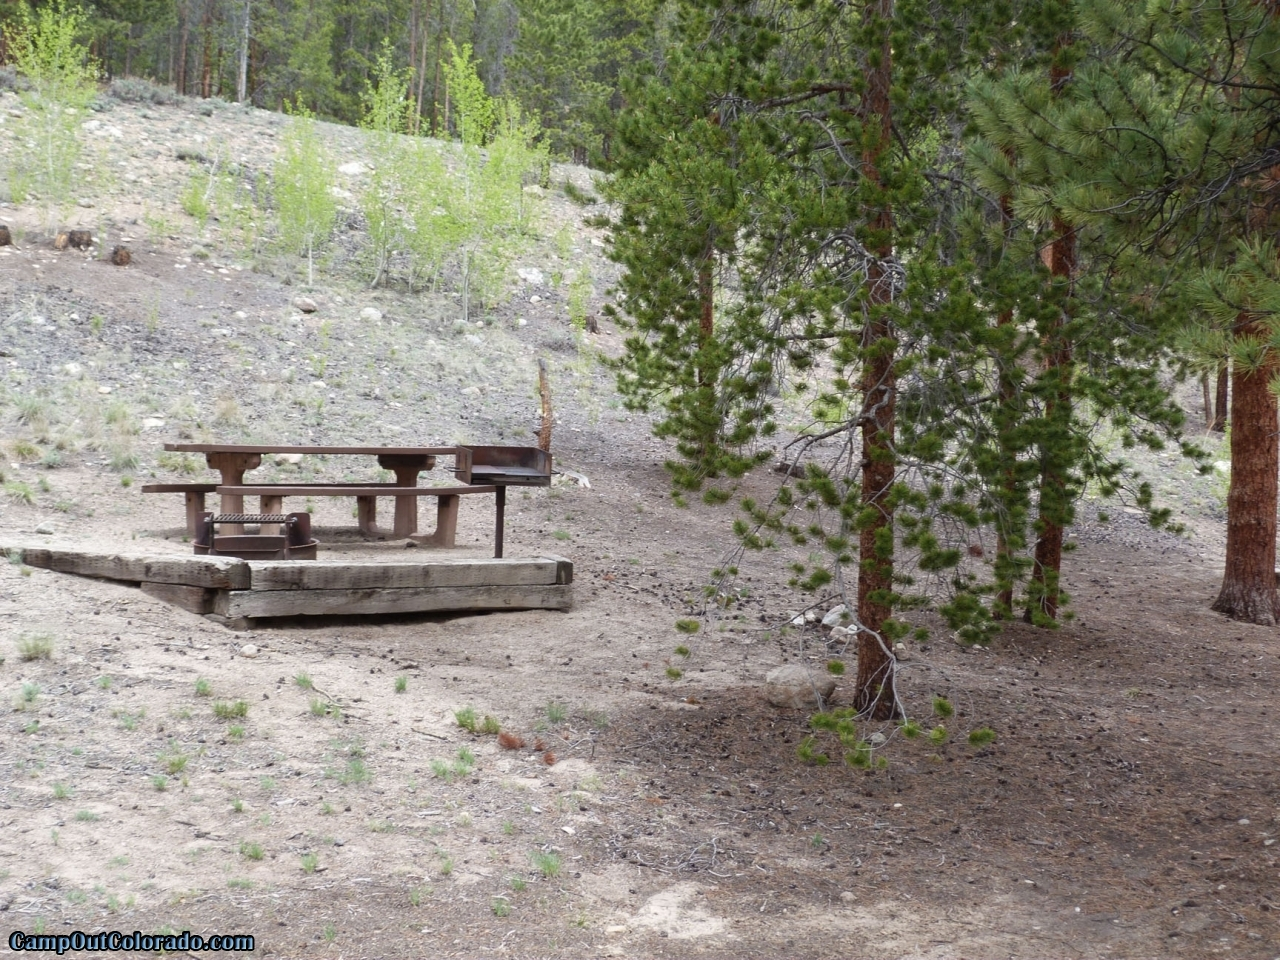 camp-out-colorado-lakeview-campground-hill-side-campsite